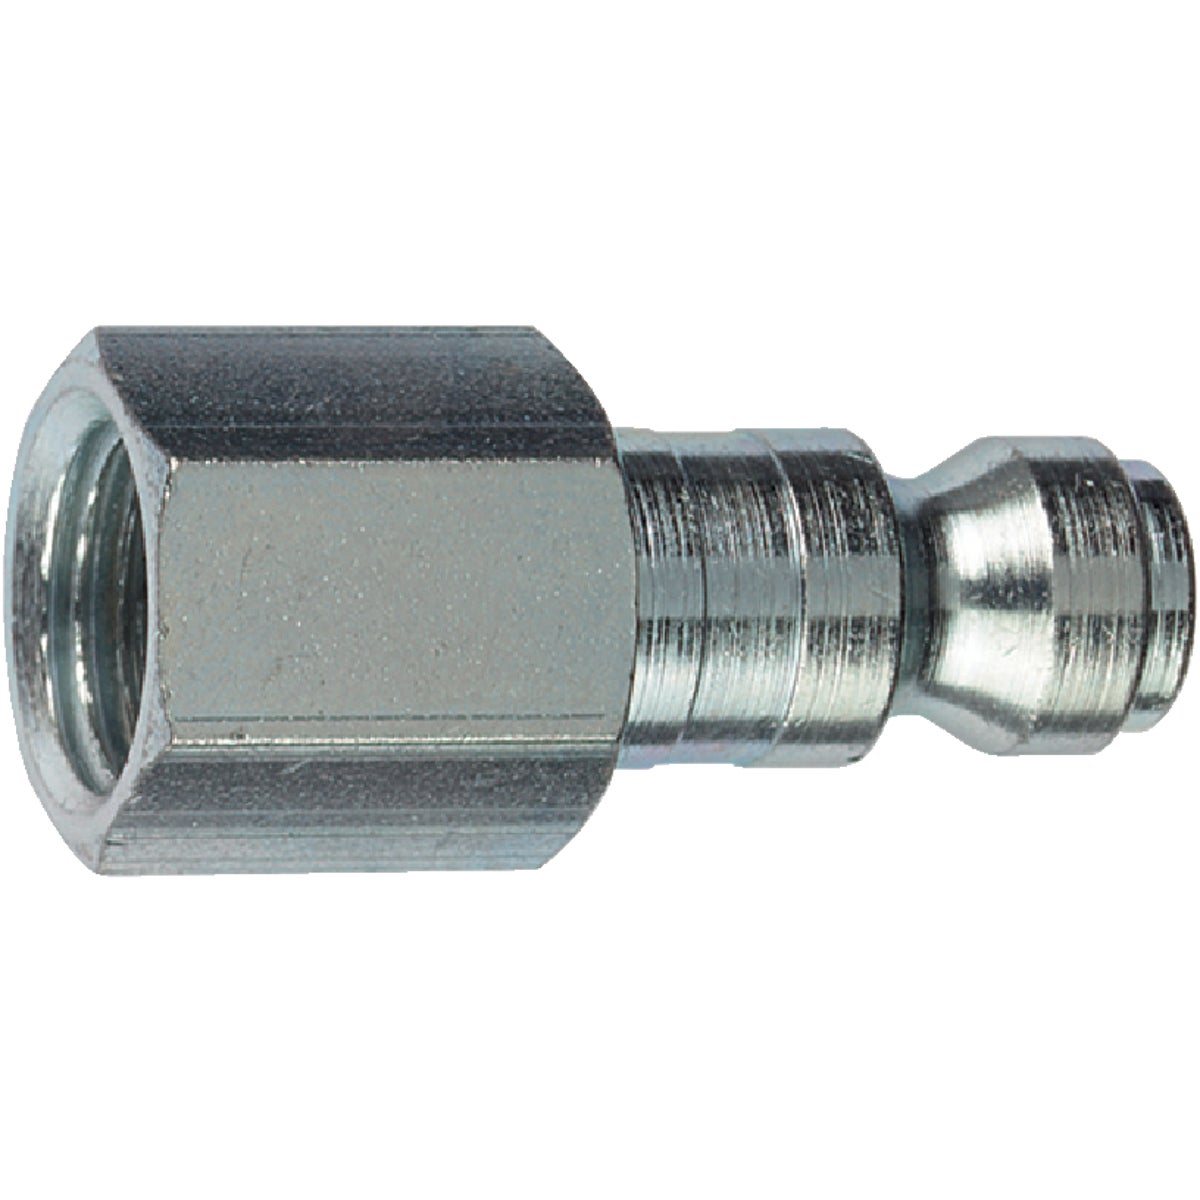 "1/4"" T-F FEMALE PLUG - 12-135 by Plews  Lubrimatic"